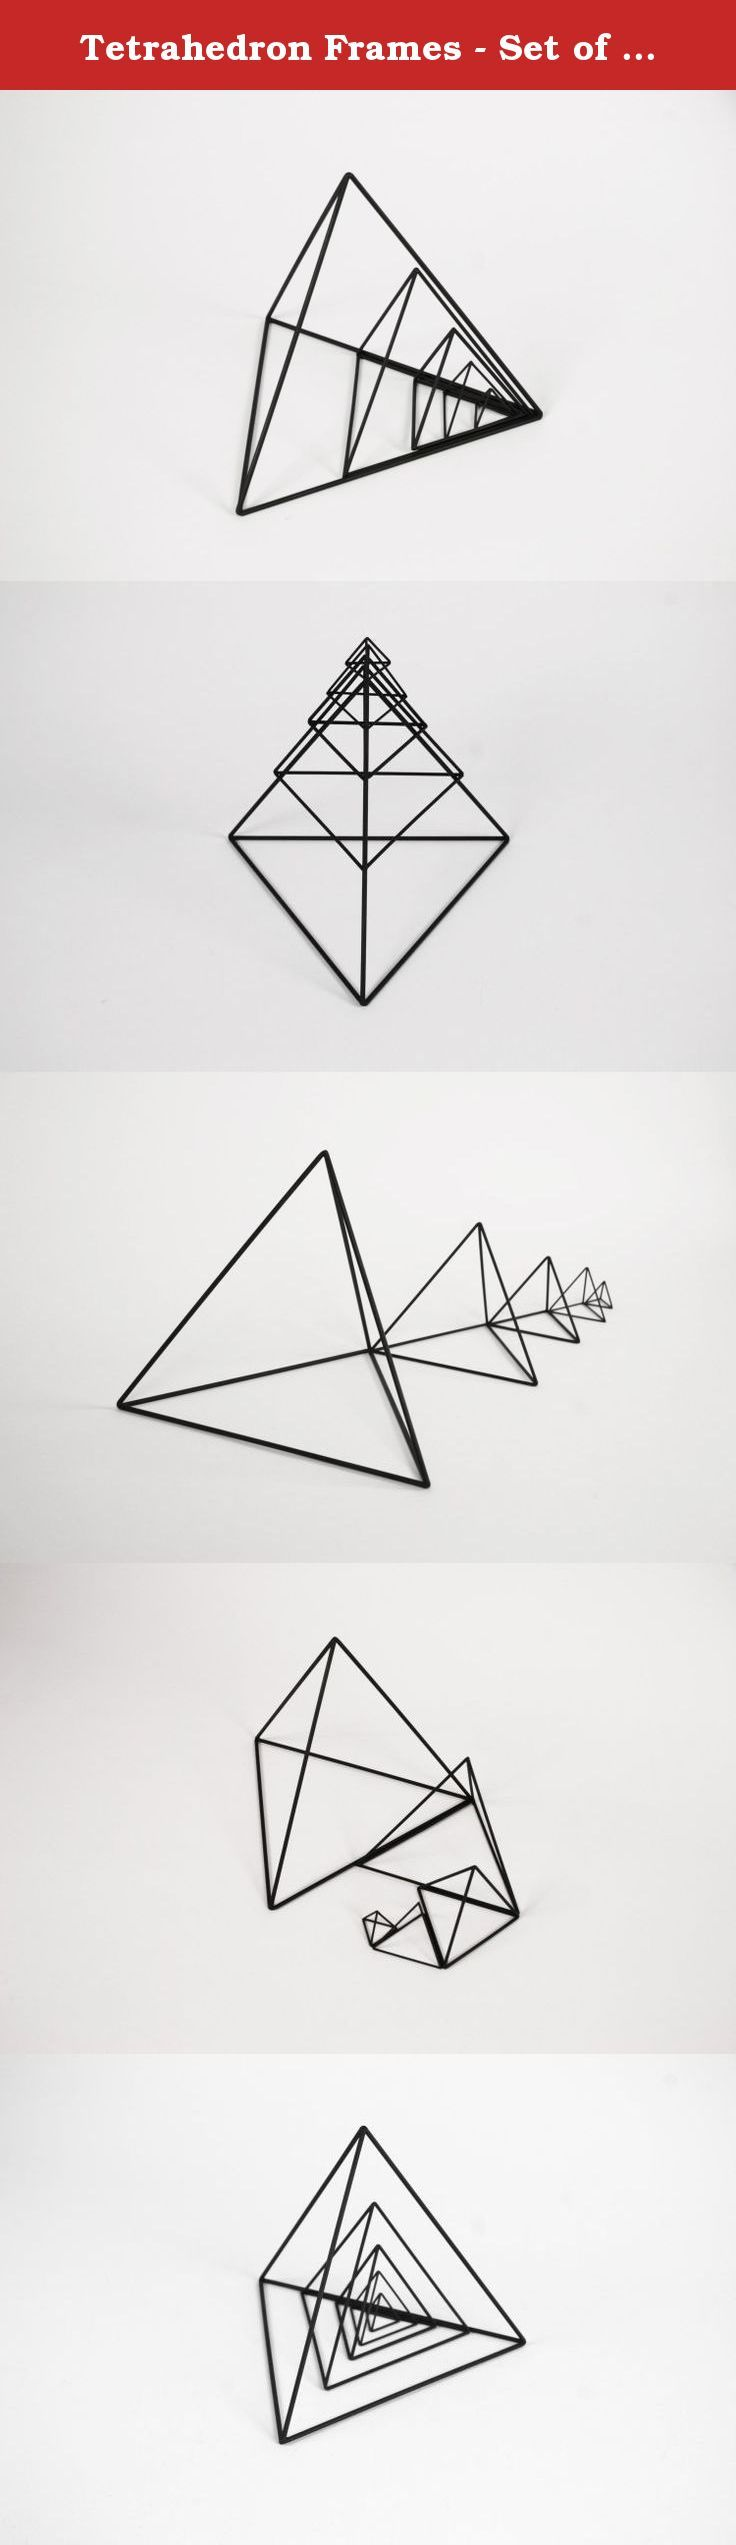 """Tetrahedron Frames - Set of 5 - Handmade Geometric Steel Wire Frame - PrimeFrame Metal Sculpture - Crosstree Seed Products. This handmade Tetrahedron Frames Set of 5 metal sculpture explores the geometric relationship of lines and space using Fibonacci sequence of growth in scale. MATERIAL 1"""" Base: 1/16"""" Steel Rod 2"""" Base: 1/16"""" Steel Rod 3"""" Base: 3/32"""" Steel Rod 5"""" Base: 3/32"""" Steel Rod 8"""" Base: 1/8"""" Steel Rod FINISH Black patina with a coat of clear wax DIMENSIONS (Length x Width x…"""